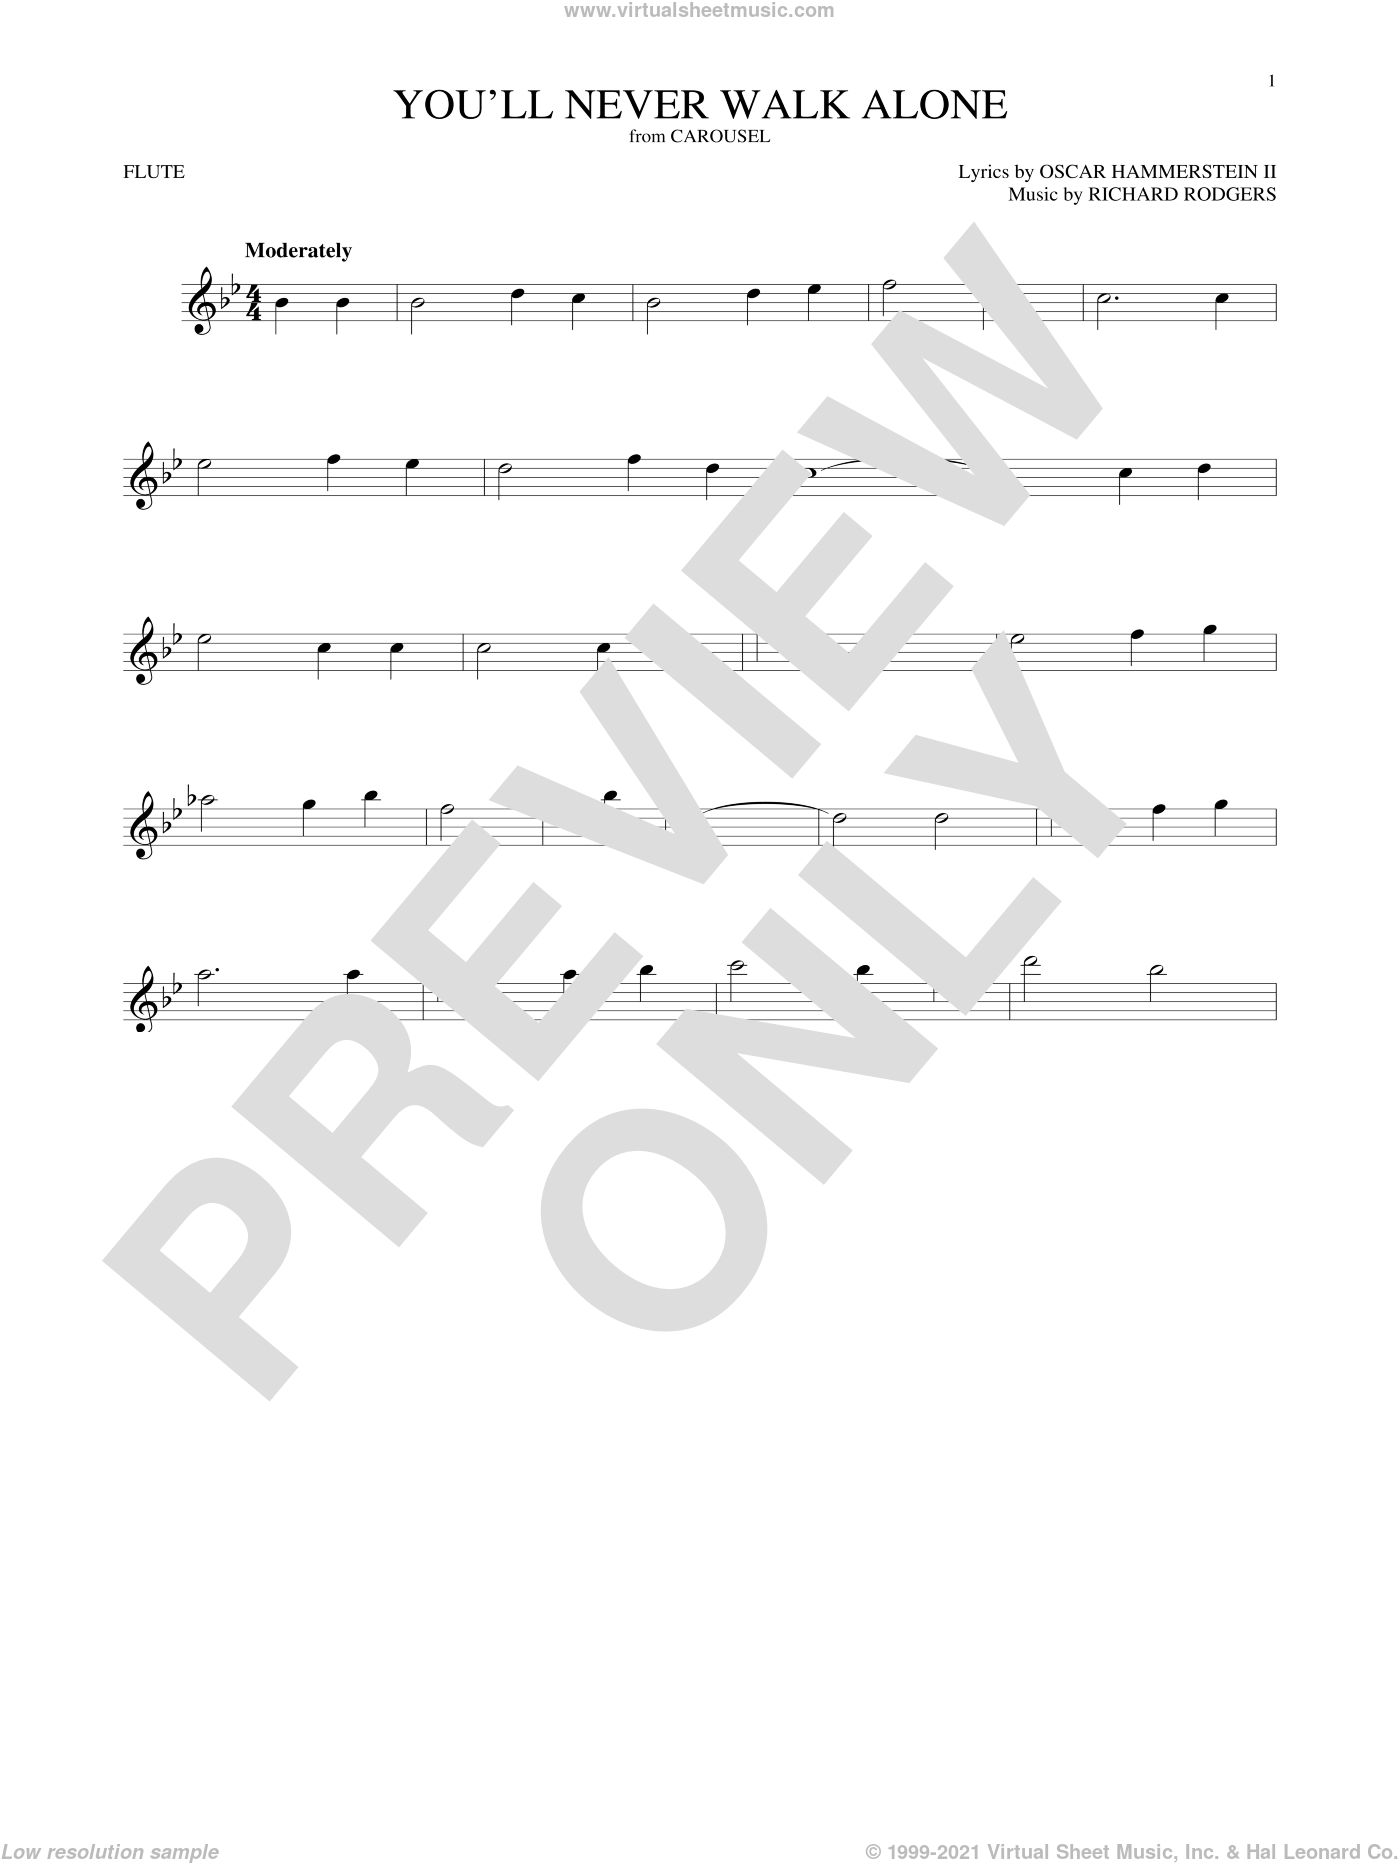 You'll Never Walk Alone sheet music for flute solo by Rodgers & Hammerstein, Oscar II Hammerstein and Richard Rodgers, intermediate skill level